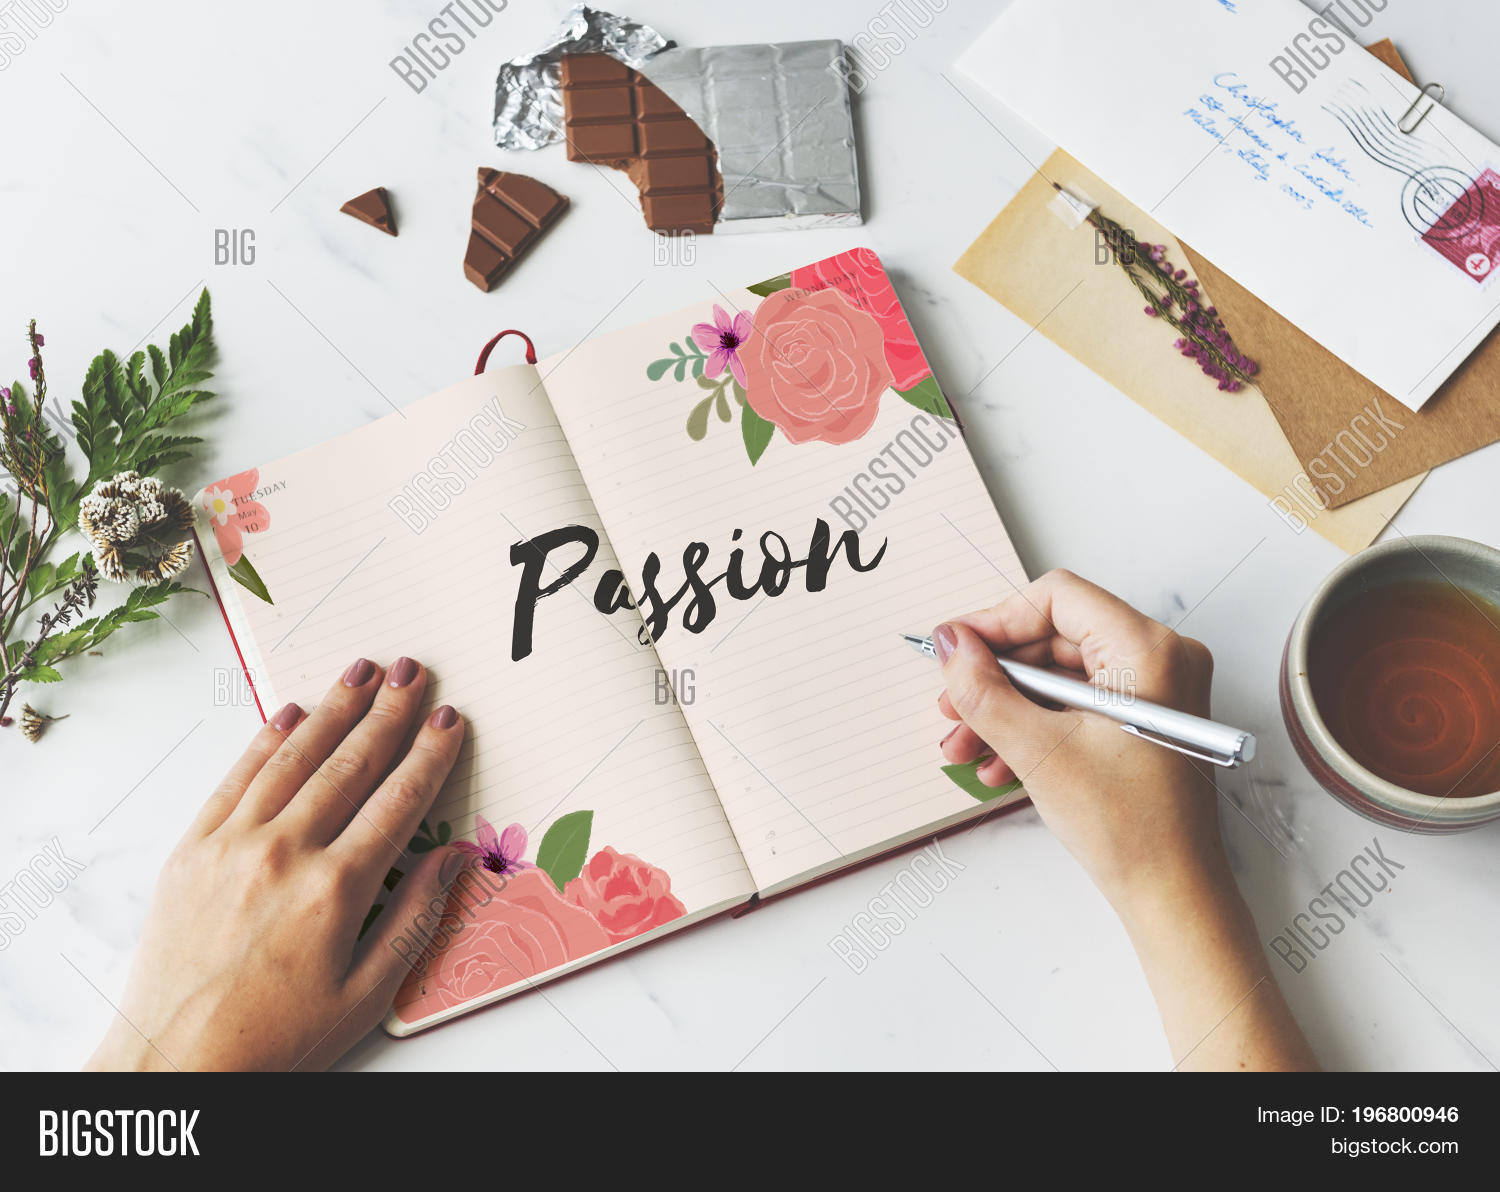 Passion Love Letter Image & Photo (Free Trial) | Bigstock